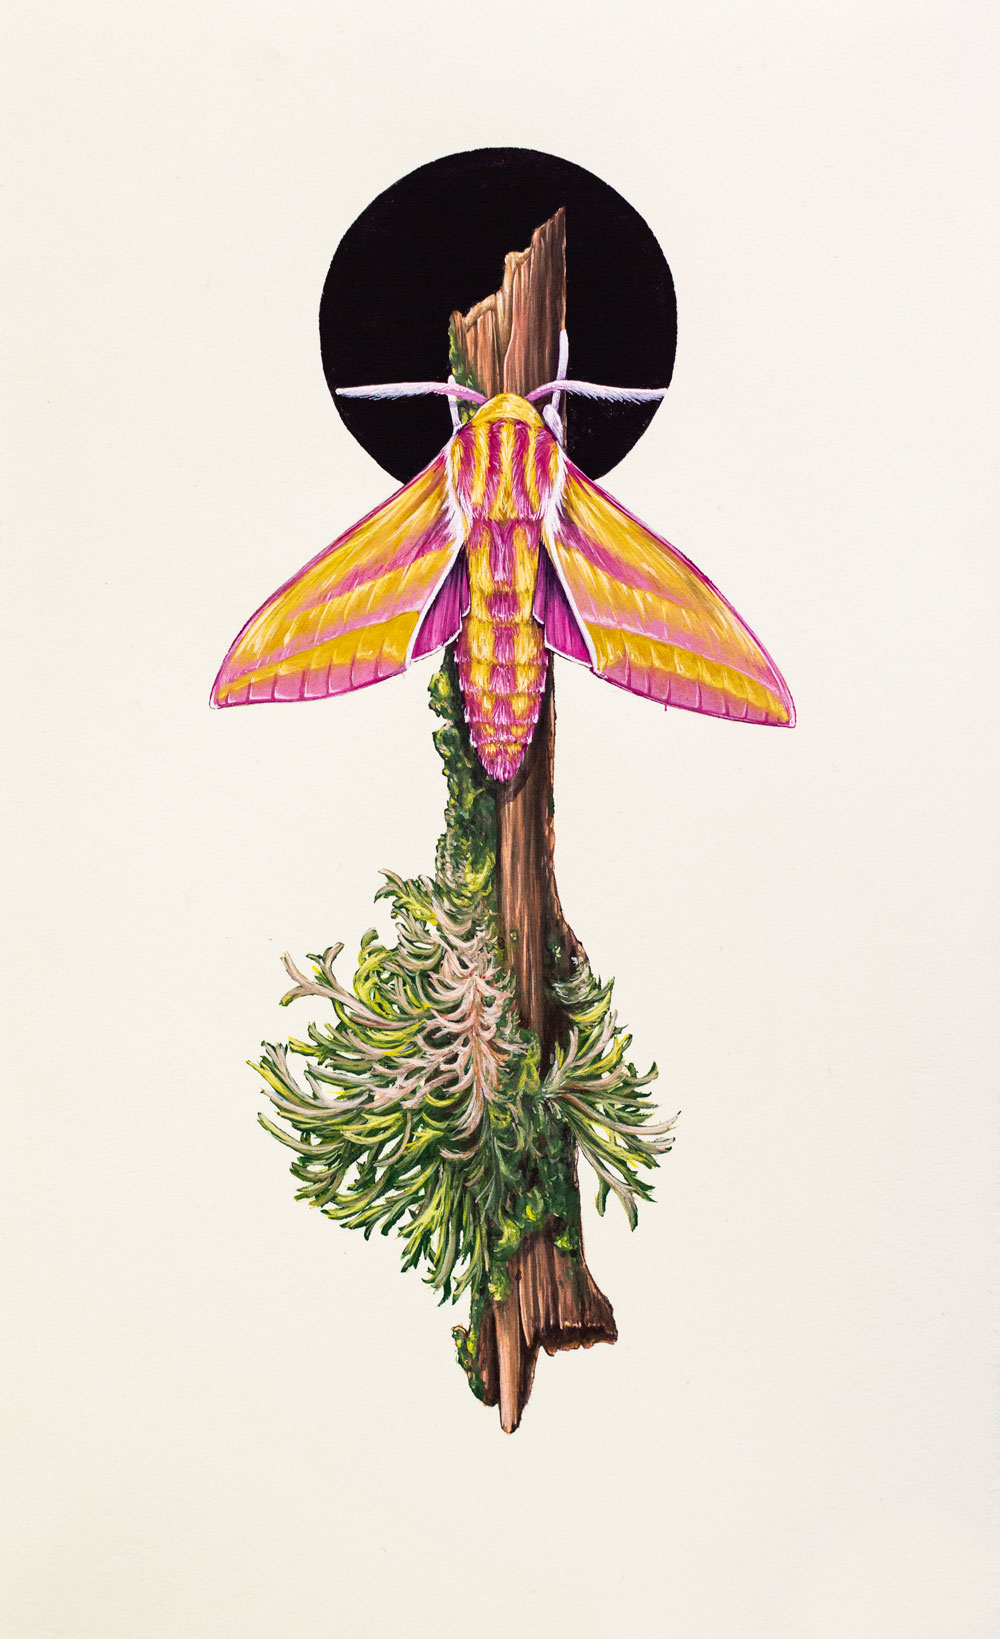 Elephant Hawk Moth, West Country, England. A part of the 'Discovery' series of works.